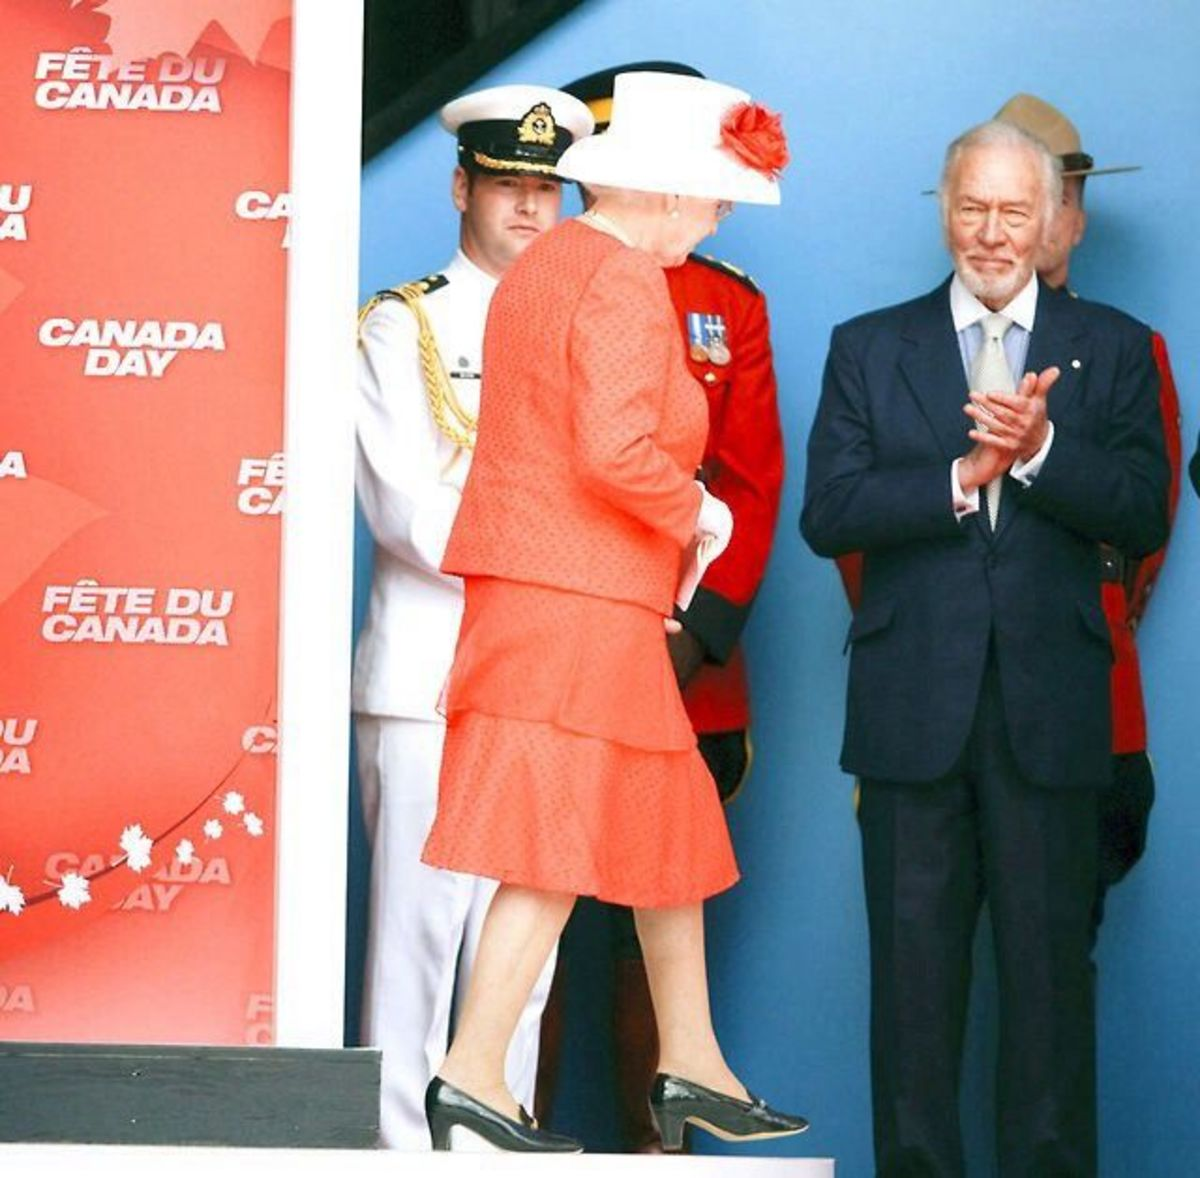 Christopher Plummer and Queen Elizabeth II on Canada Day (July 1, 2010) in Ottawa